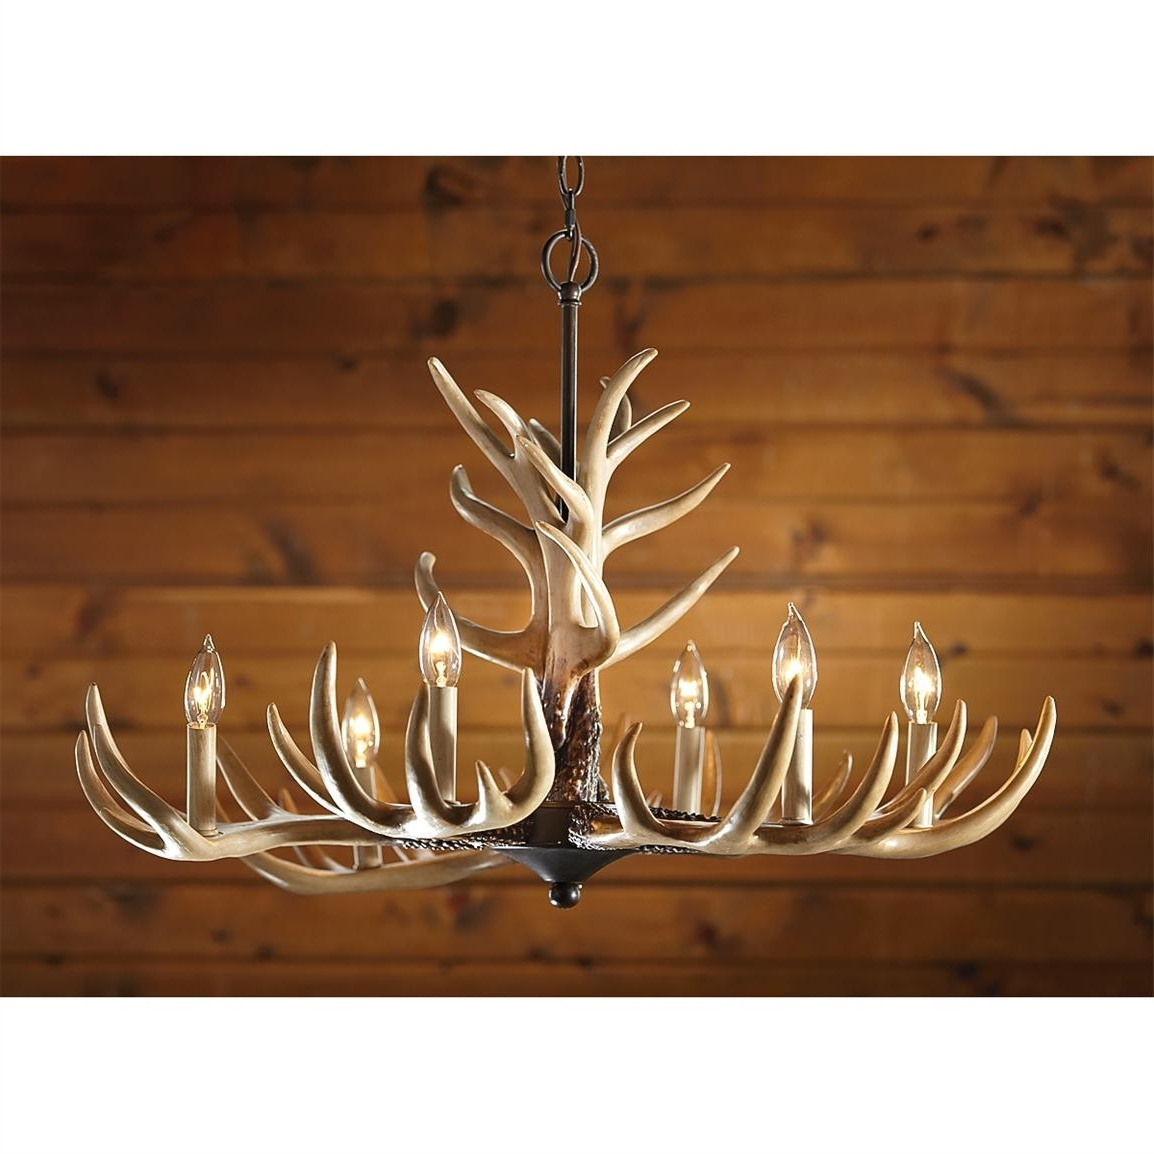 Antlers Chandeliers Within Well Known Castlecreek 6 Light Whitetail Antler Chandelier – 226091, Lighting (View 8 of 15)